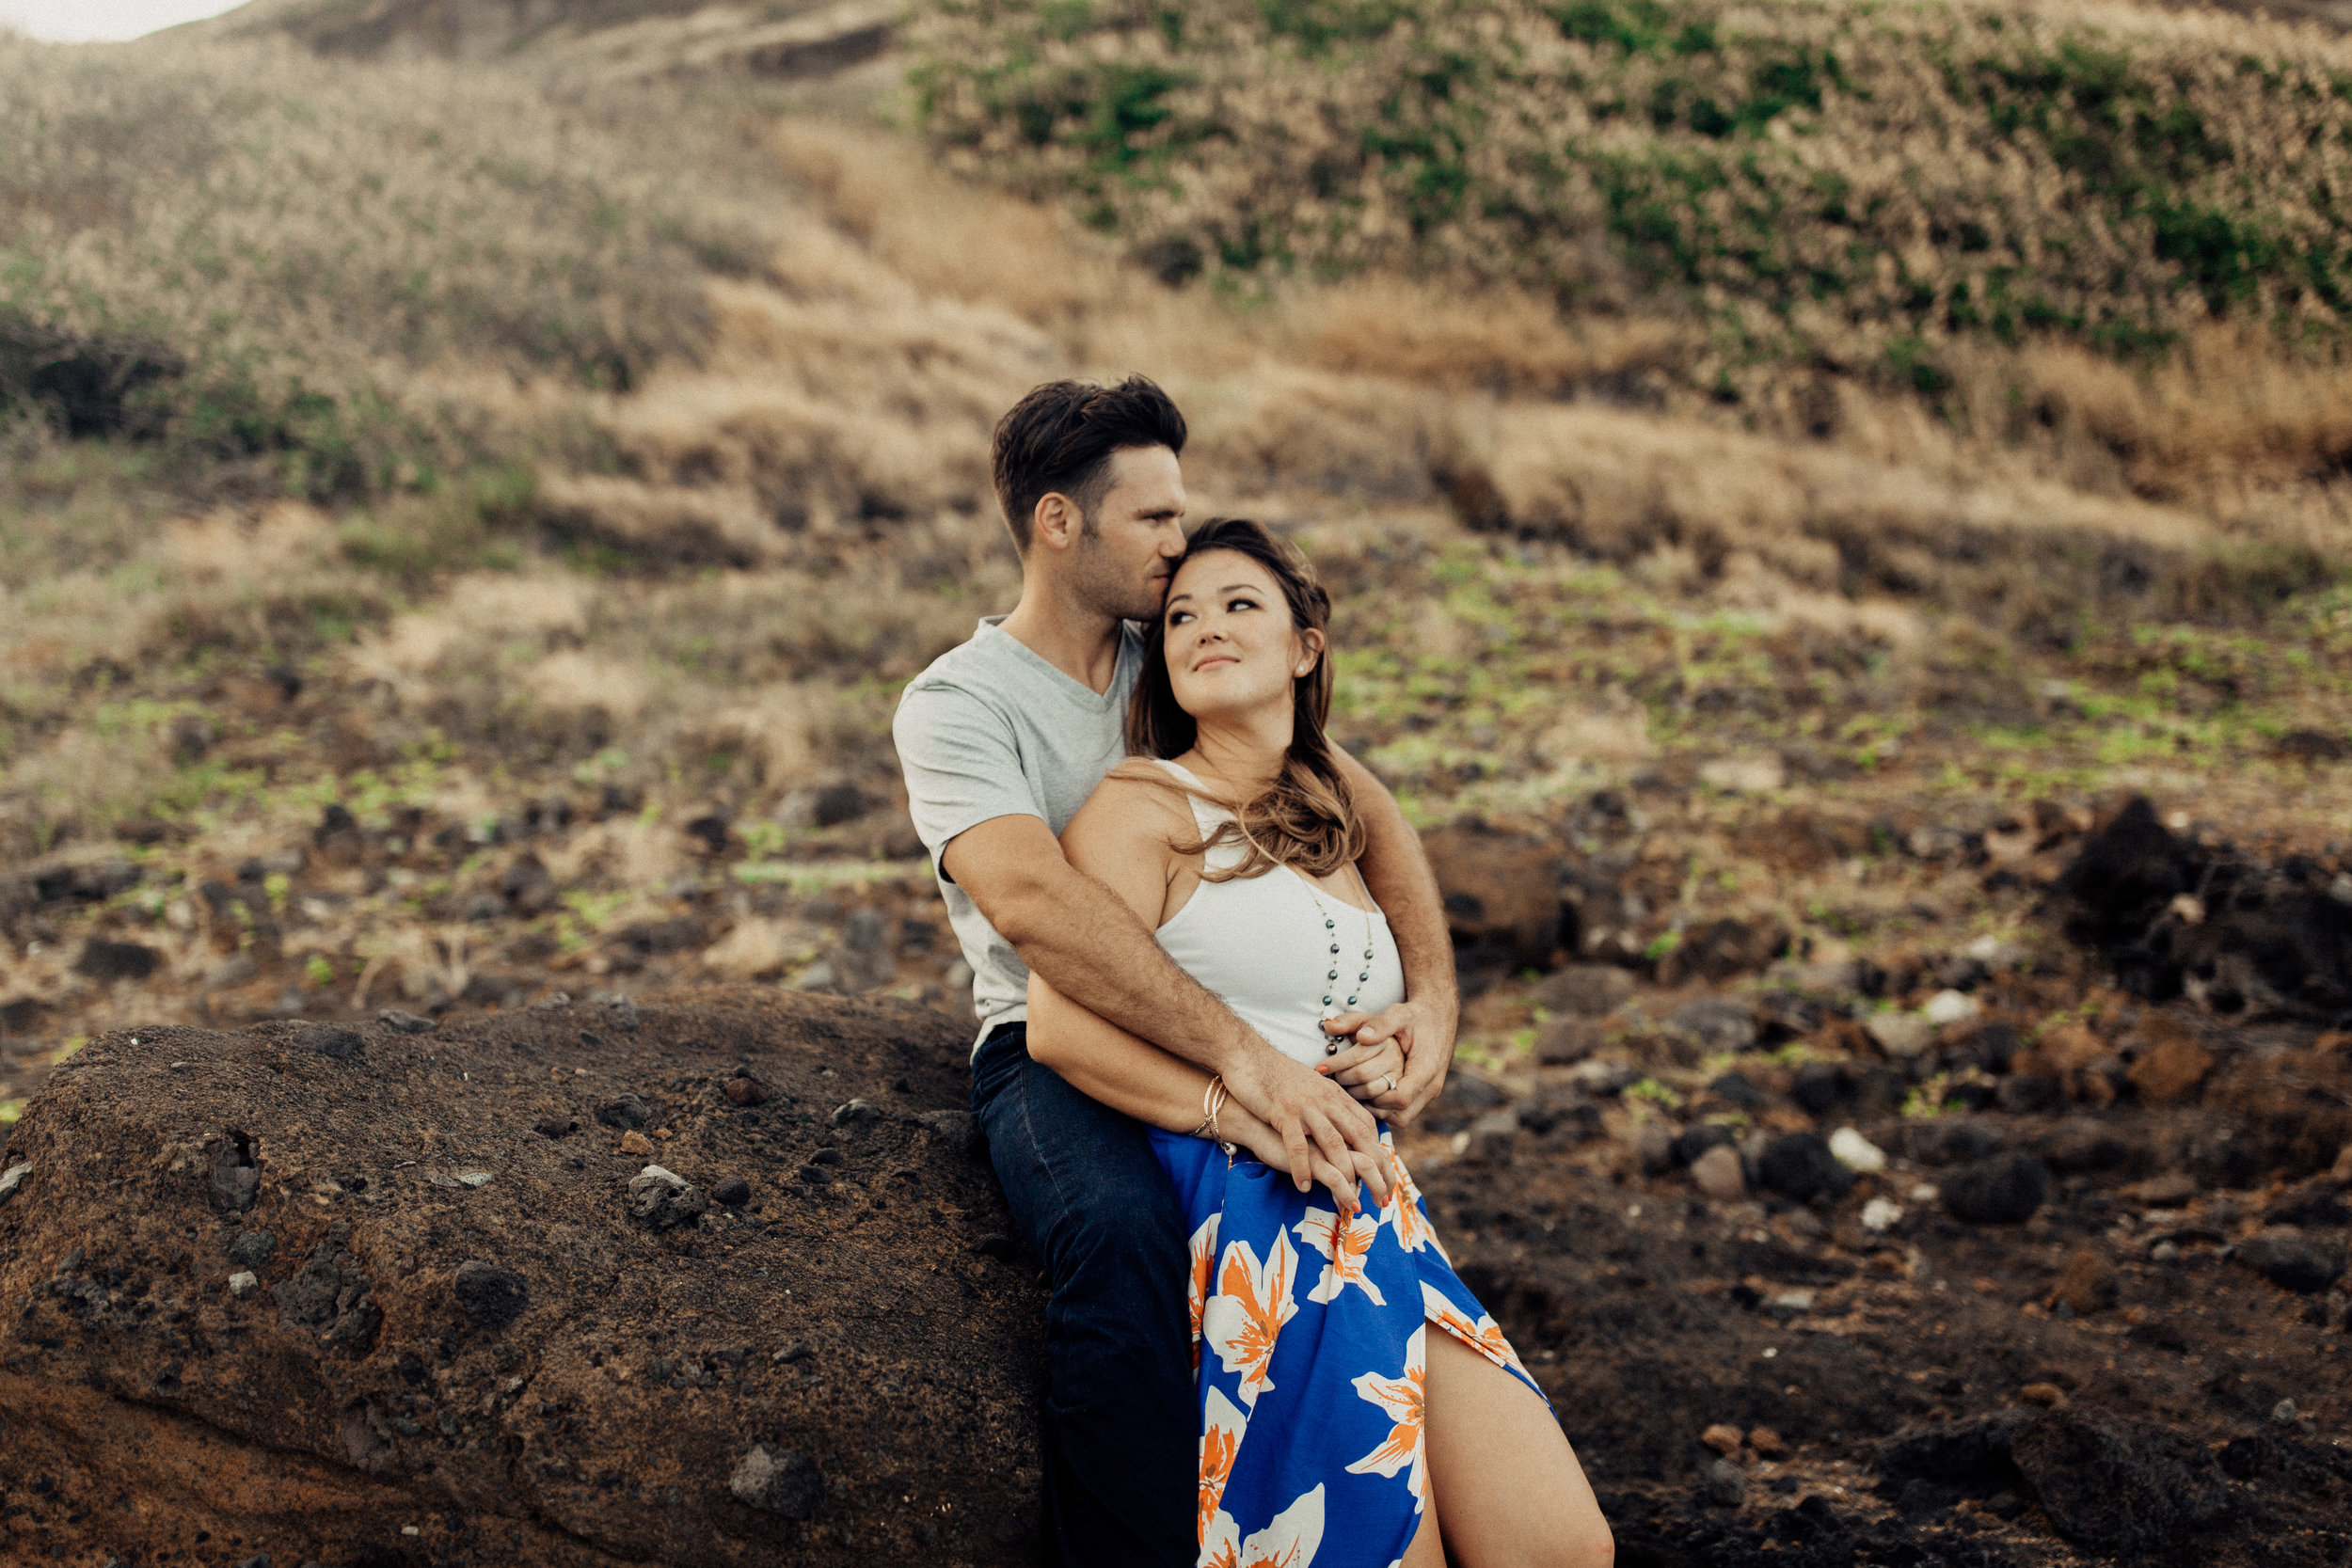 honolulu-wedding-photographer-186.jpg